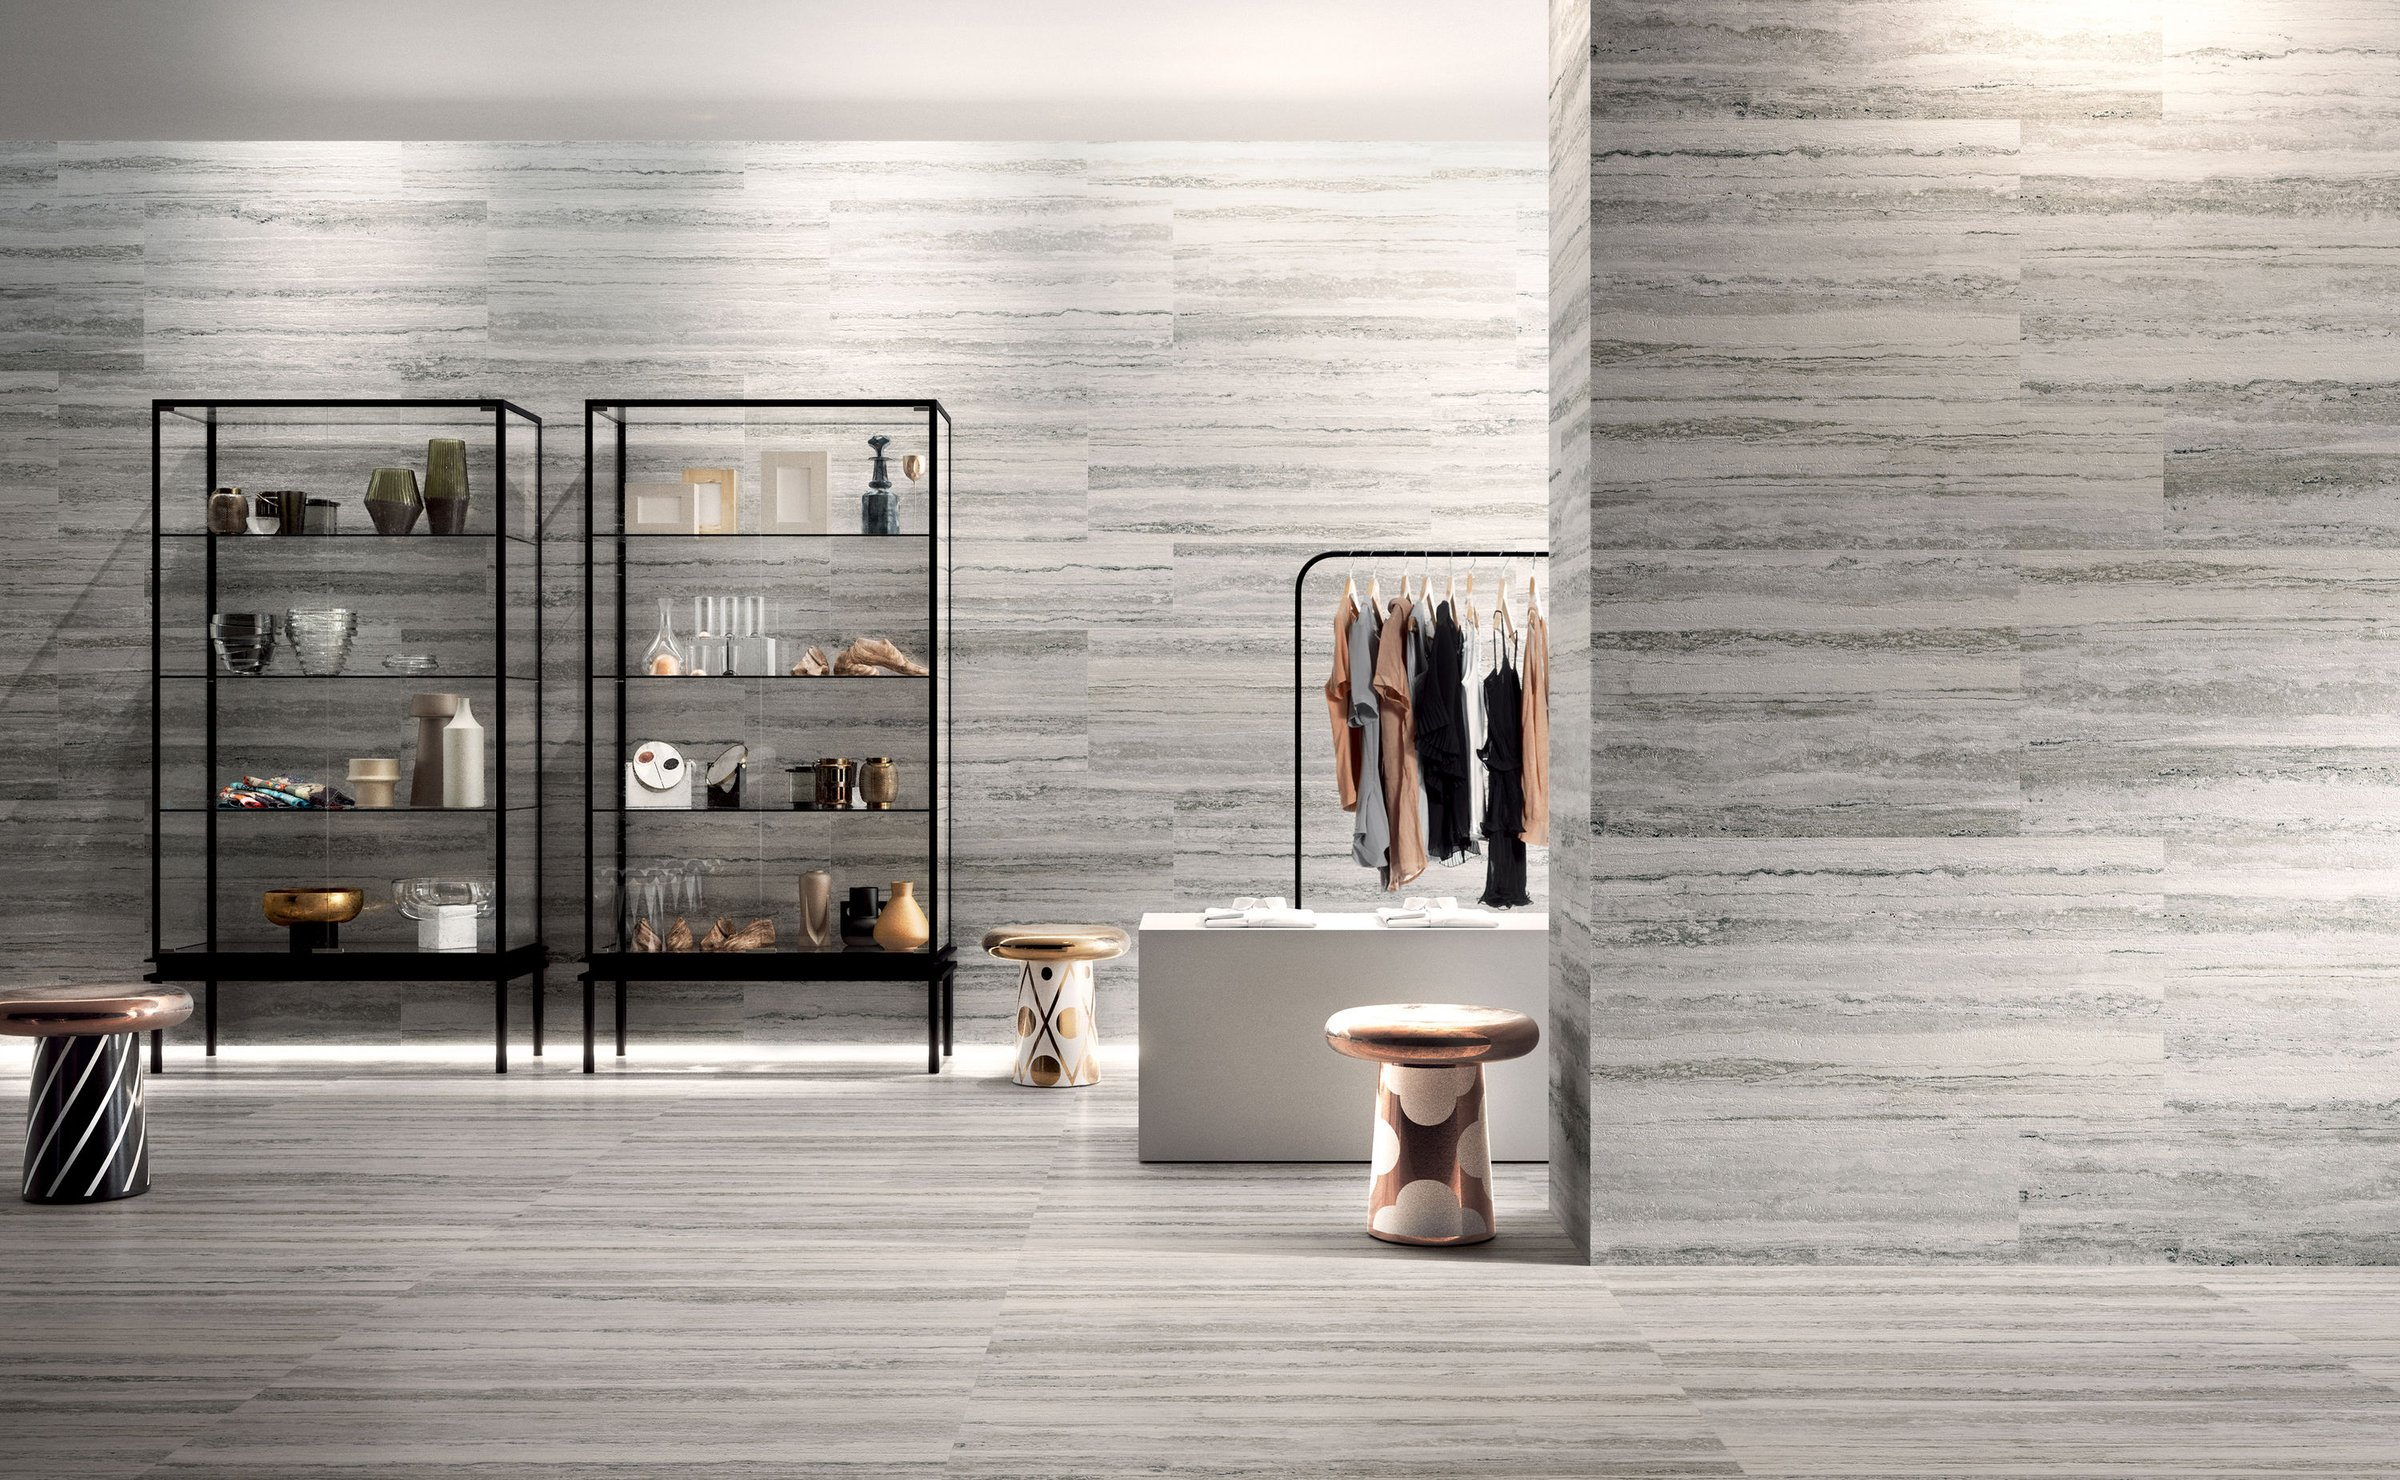 Tipos: marble effect porcelain stoneware